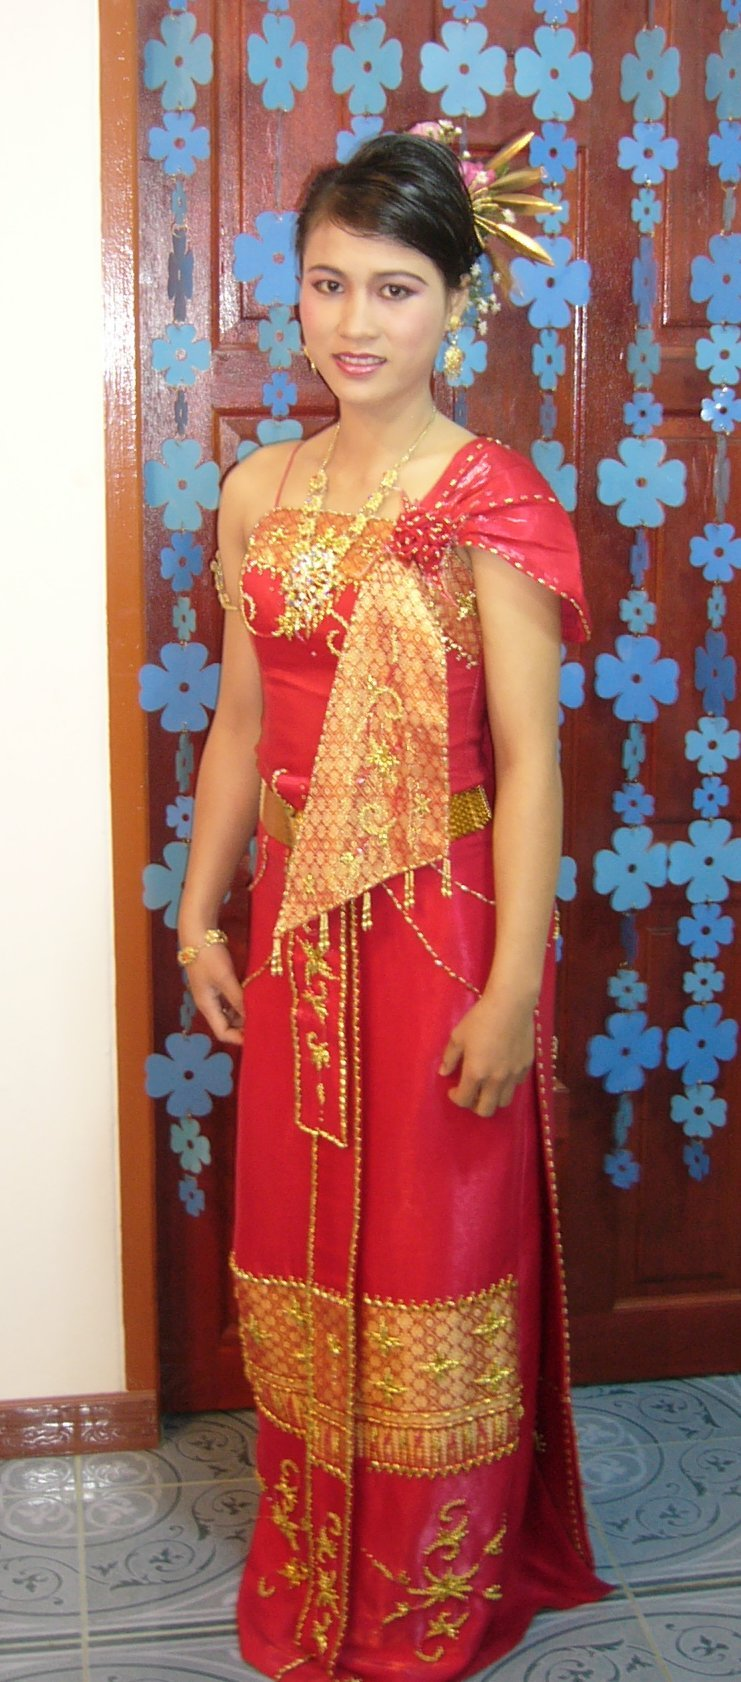 Description Traditional red female Thai dress - Nusscharin at minor